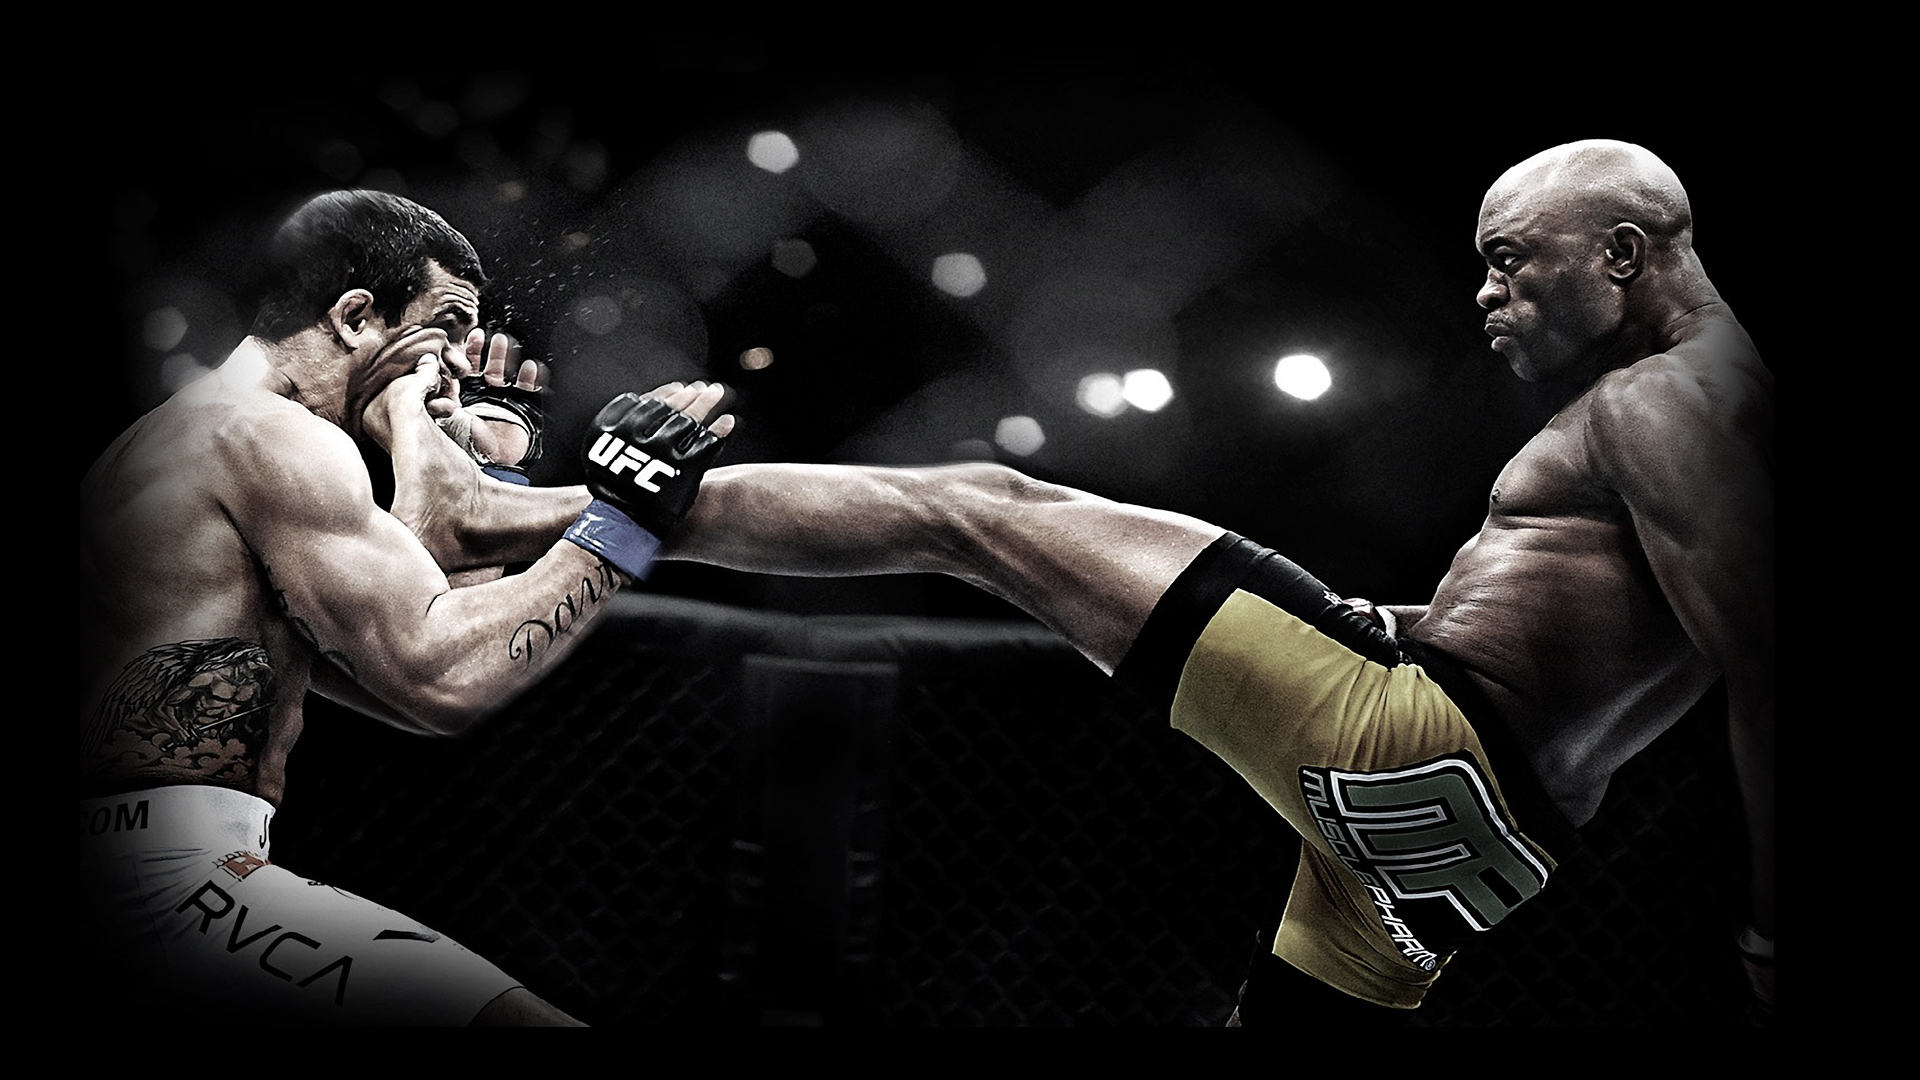 Ufc Wallpapers G29Y2KM 077 Mb   4USkY 1920x1080